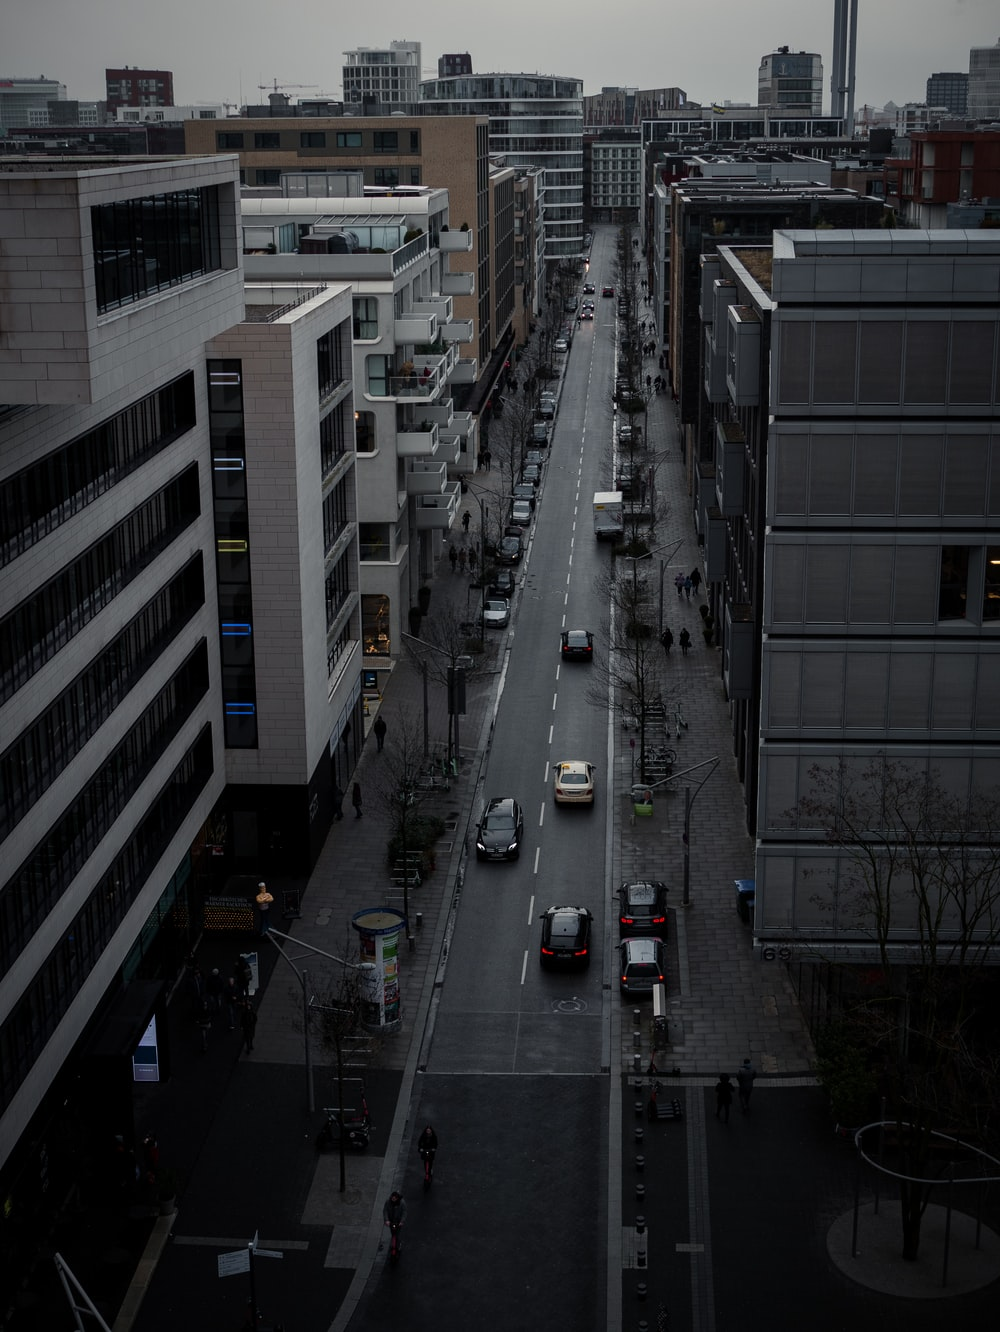 cars on road in city during daytime